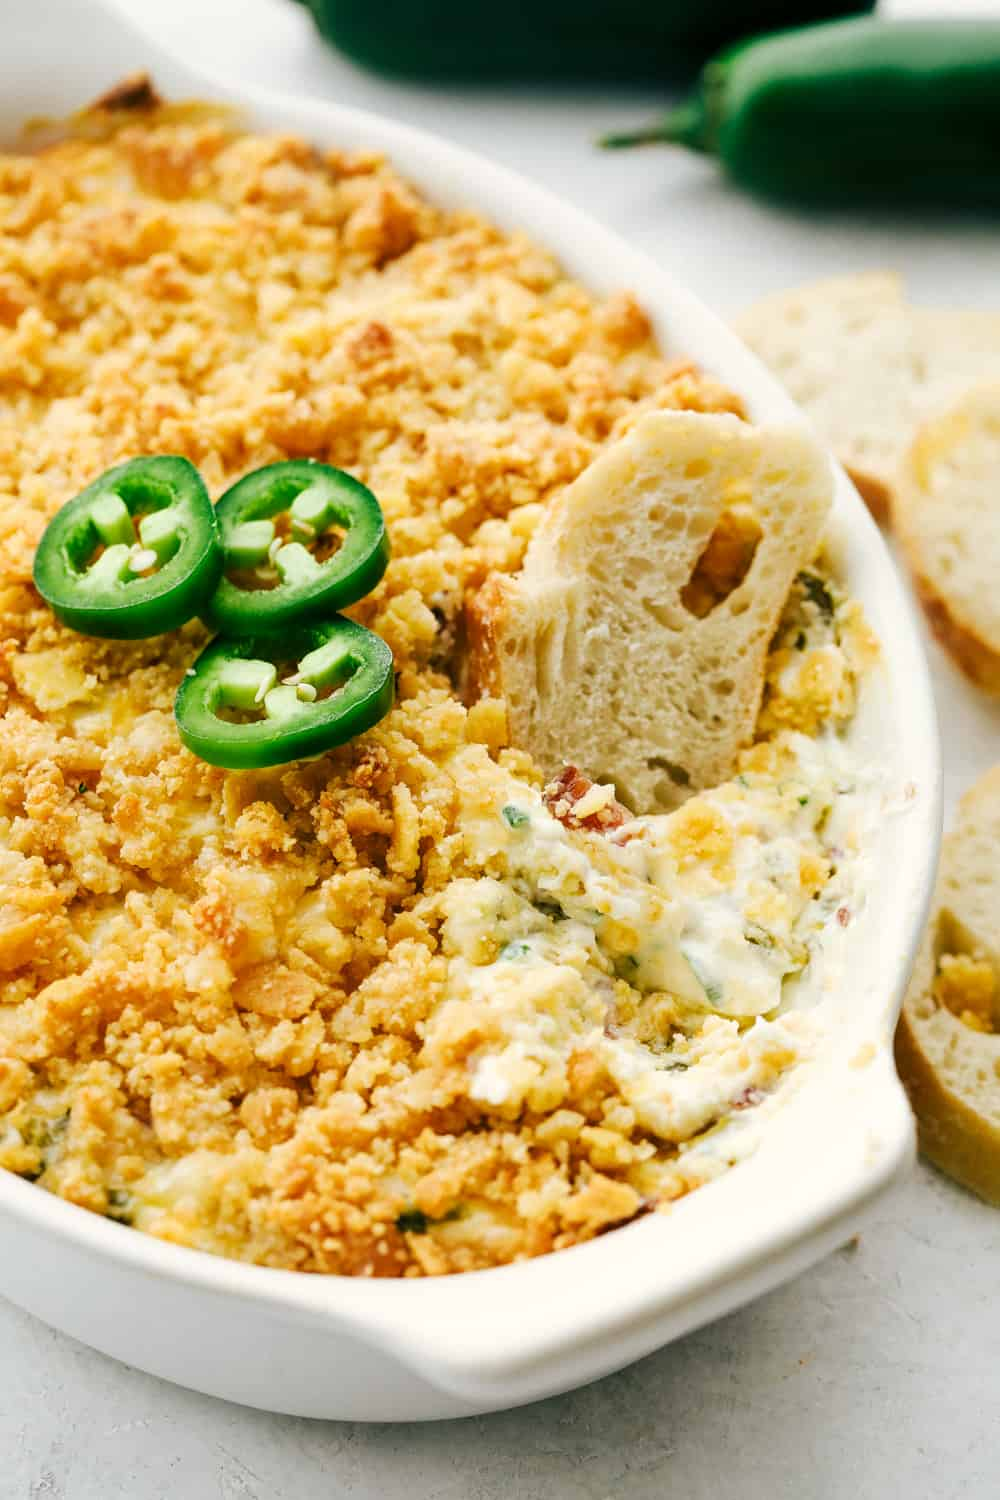 Creamy, spicy jalapeno dip with bread for dipping.